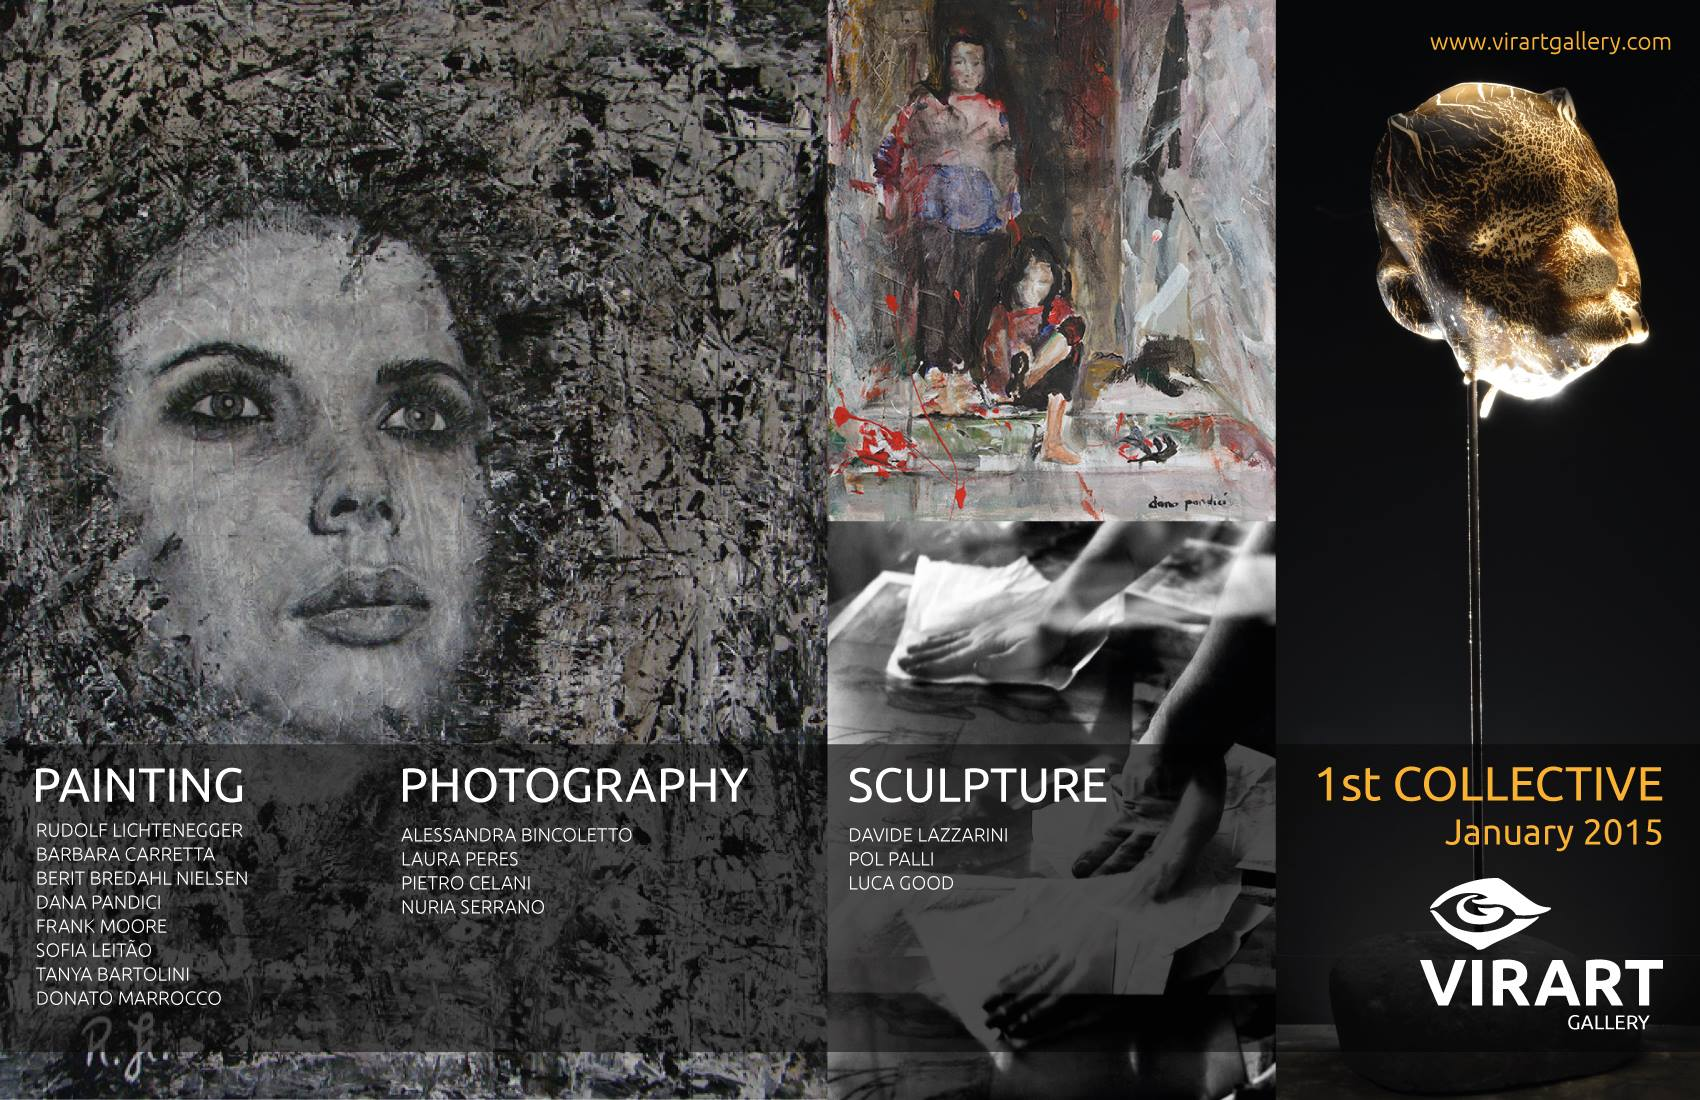 Dana Pandici have been selected to participate at the 1st collective exhibitions 2015 on VirArtGallery